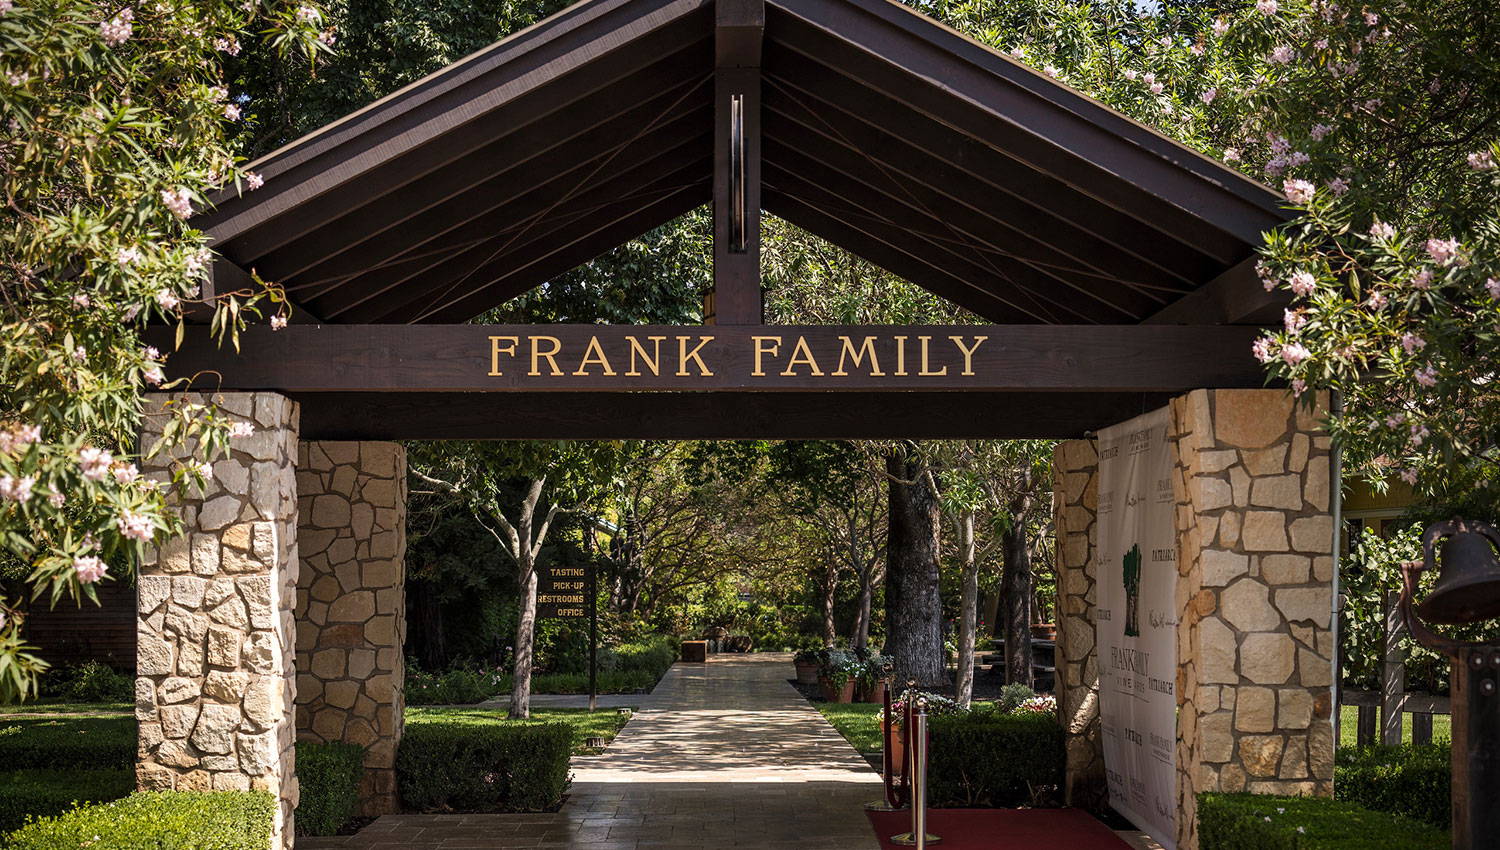 Entrance arch to Frank Family Vineyards